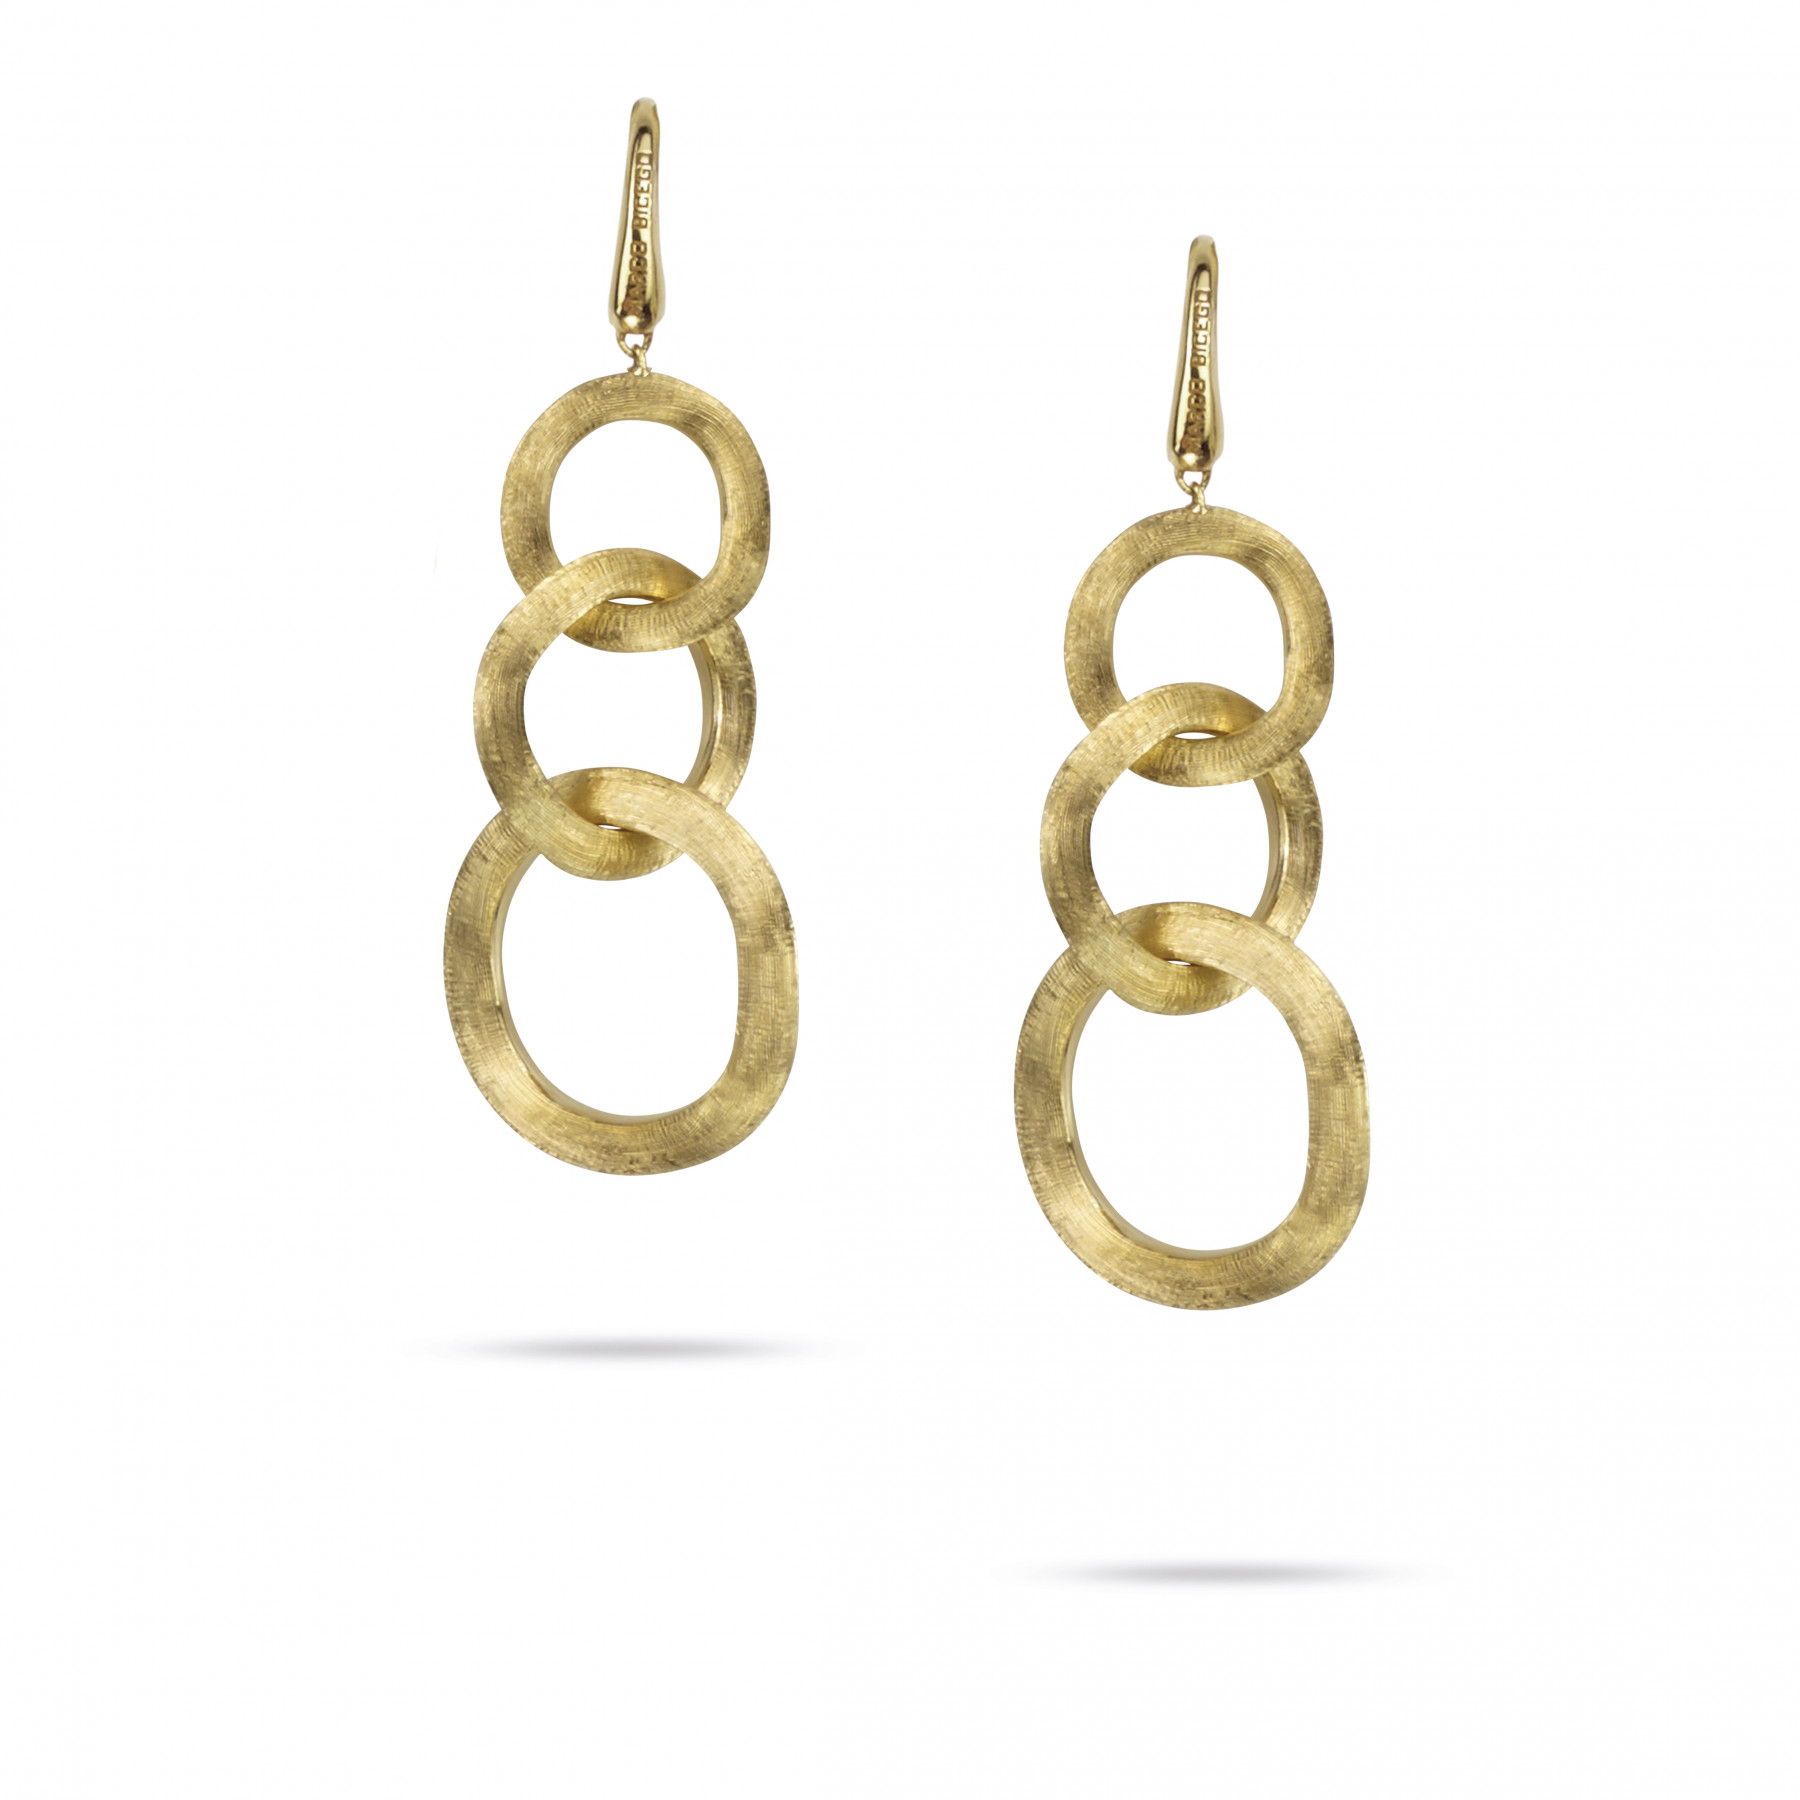 Marco Bicego Jaipur 18kt Yellow Gold 3 Link Dangle Earrings